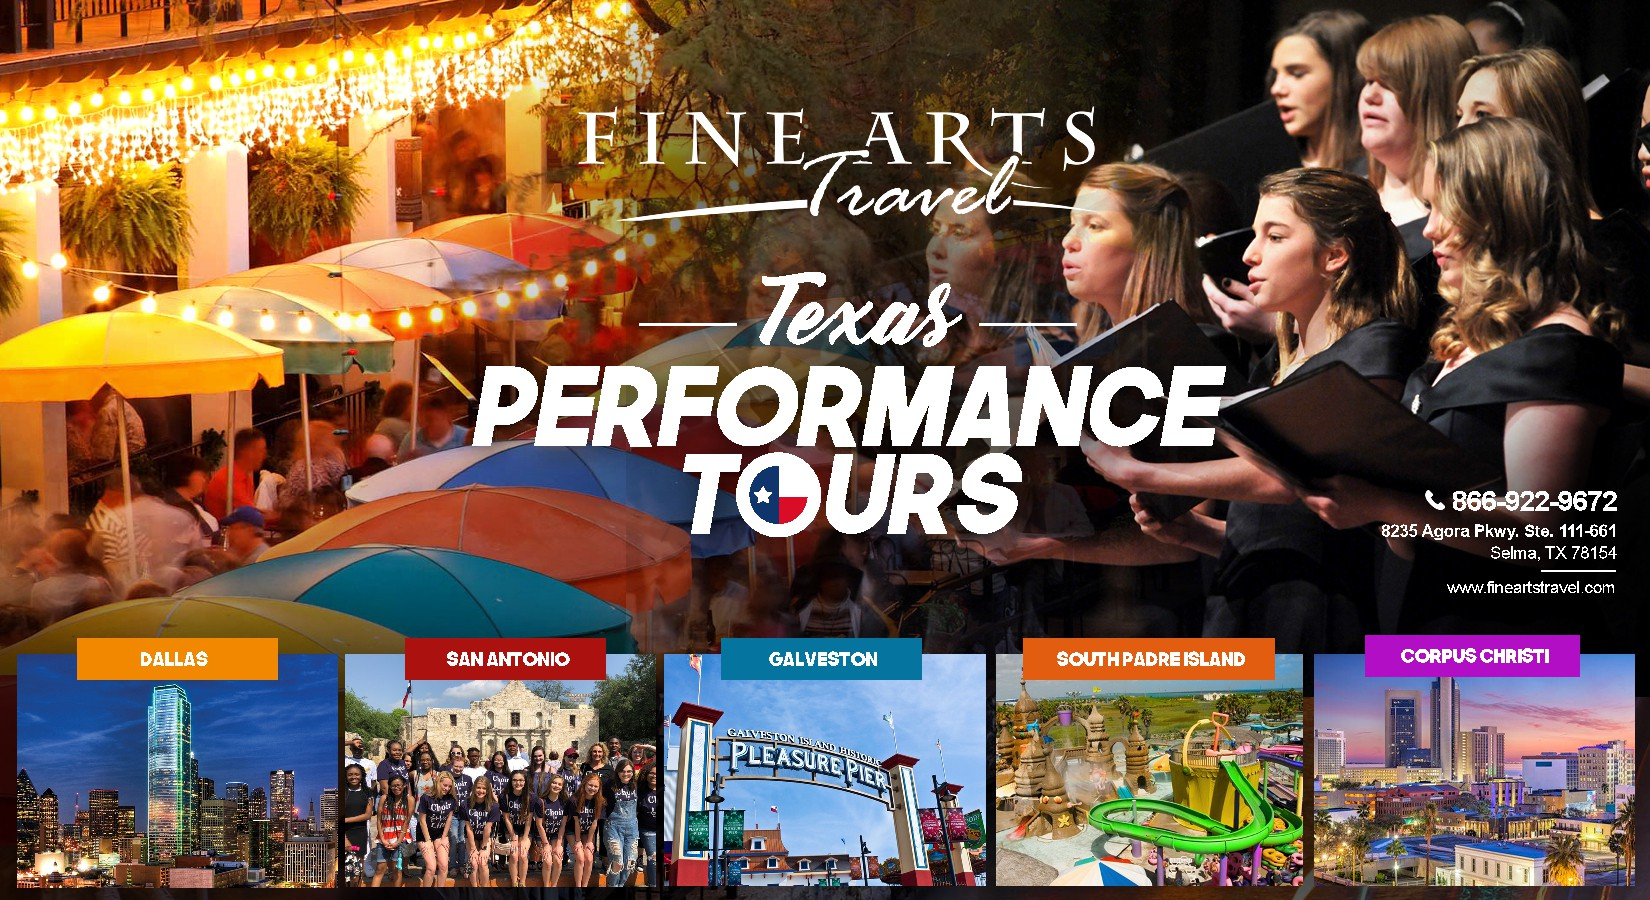 Fine Arts Travel is looking for a Direct Mail Postcard Graphic